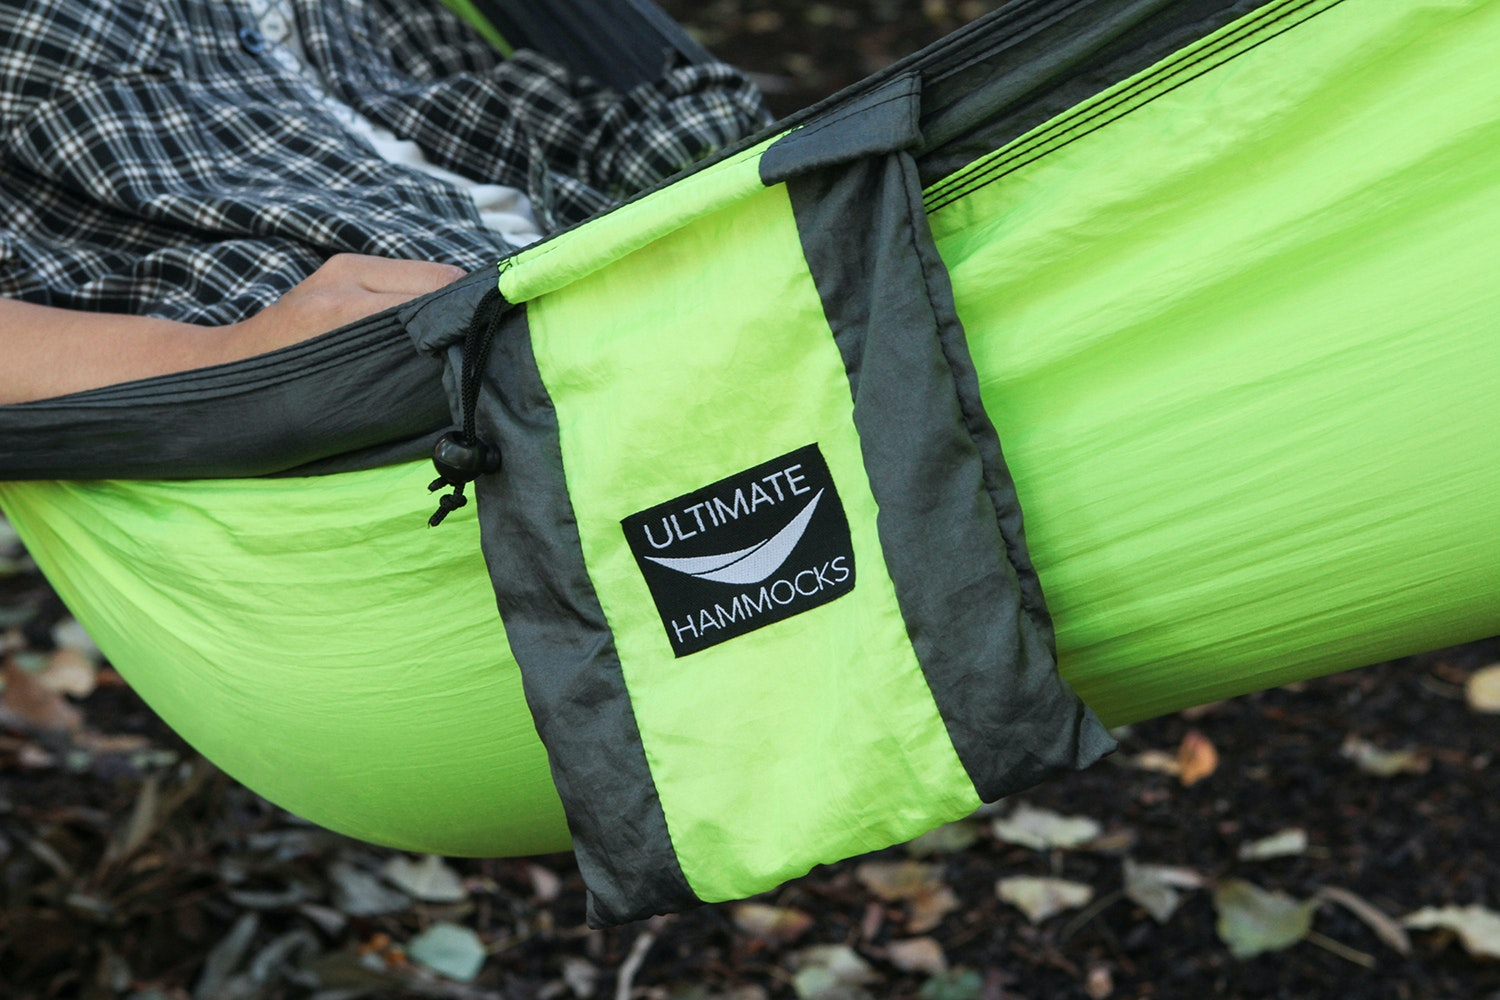 The Ultimate Hammock Single and Strap Bundle